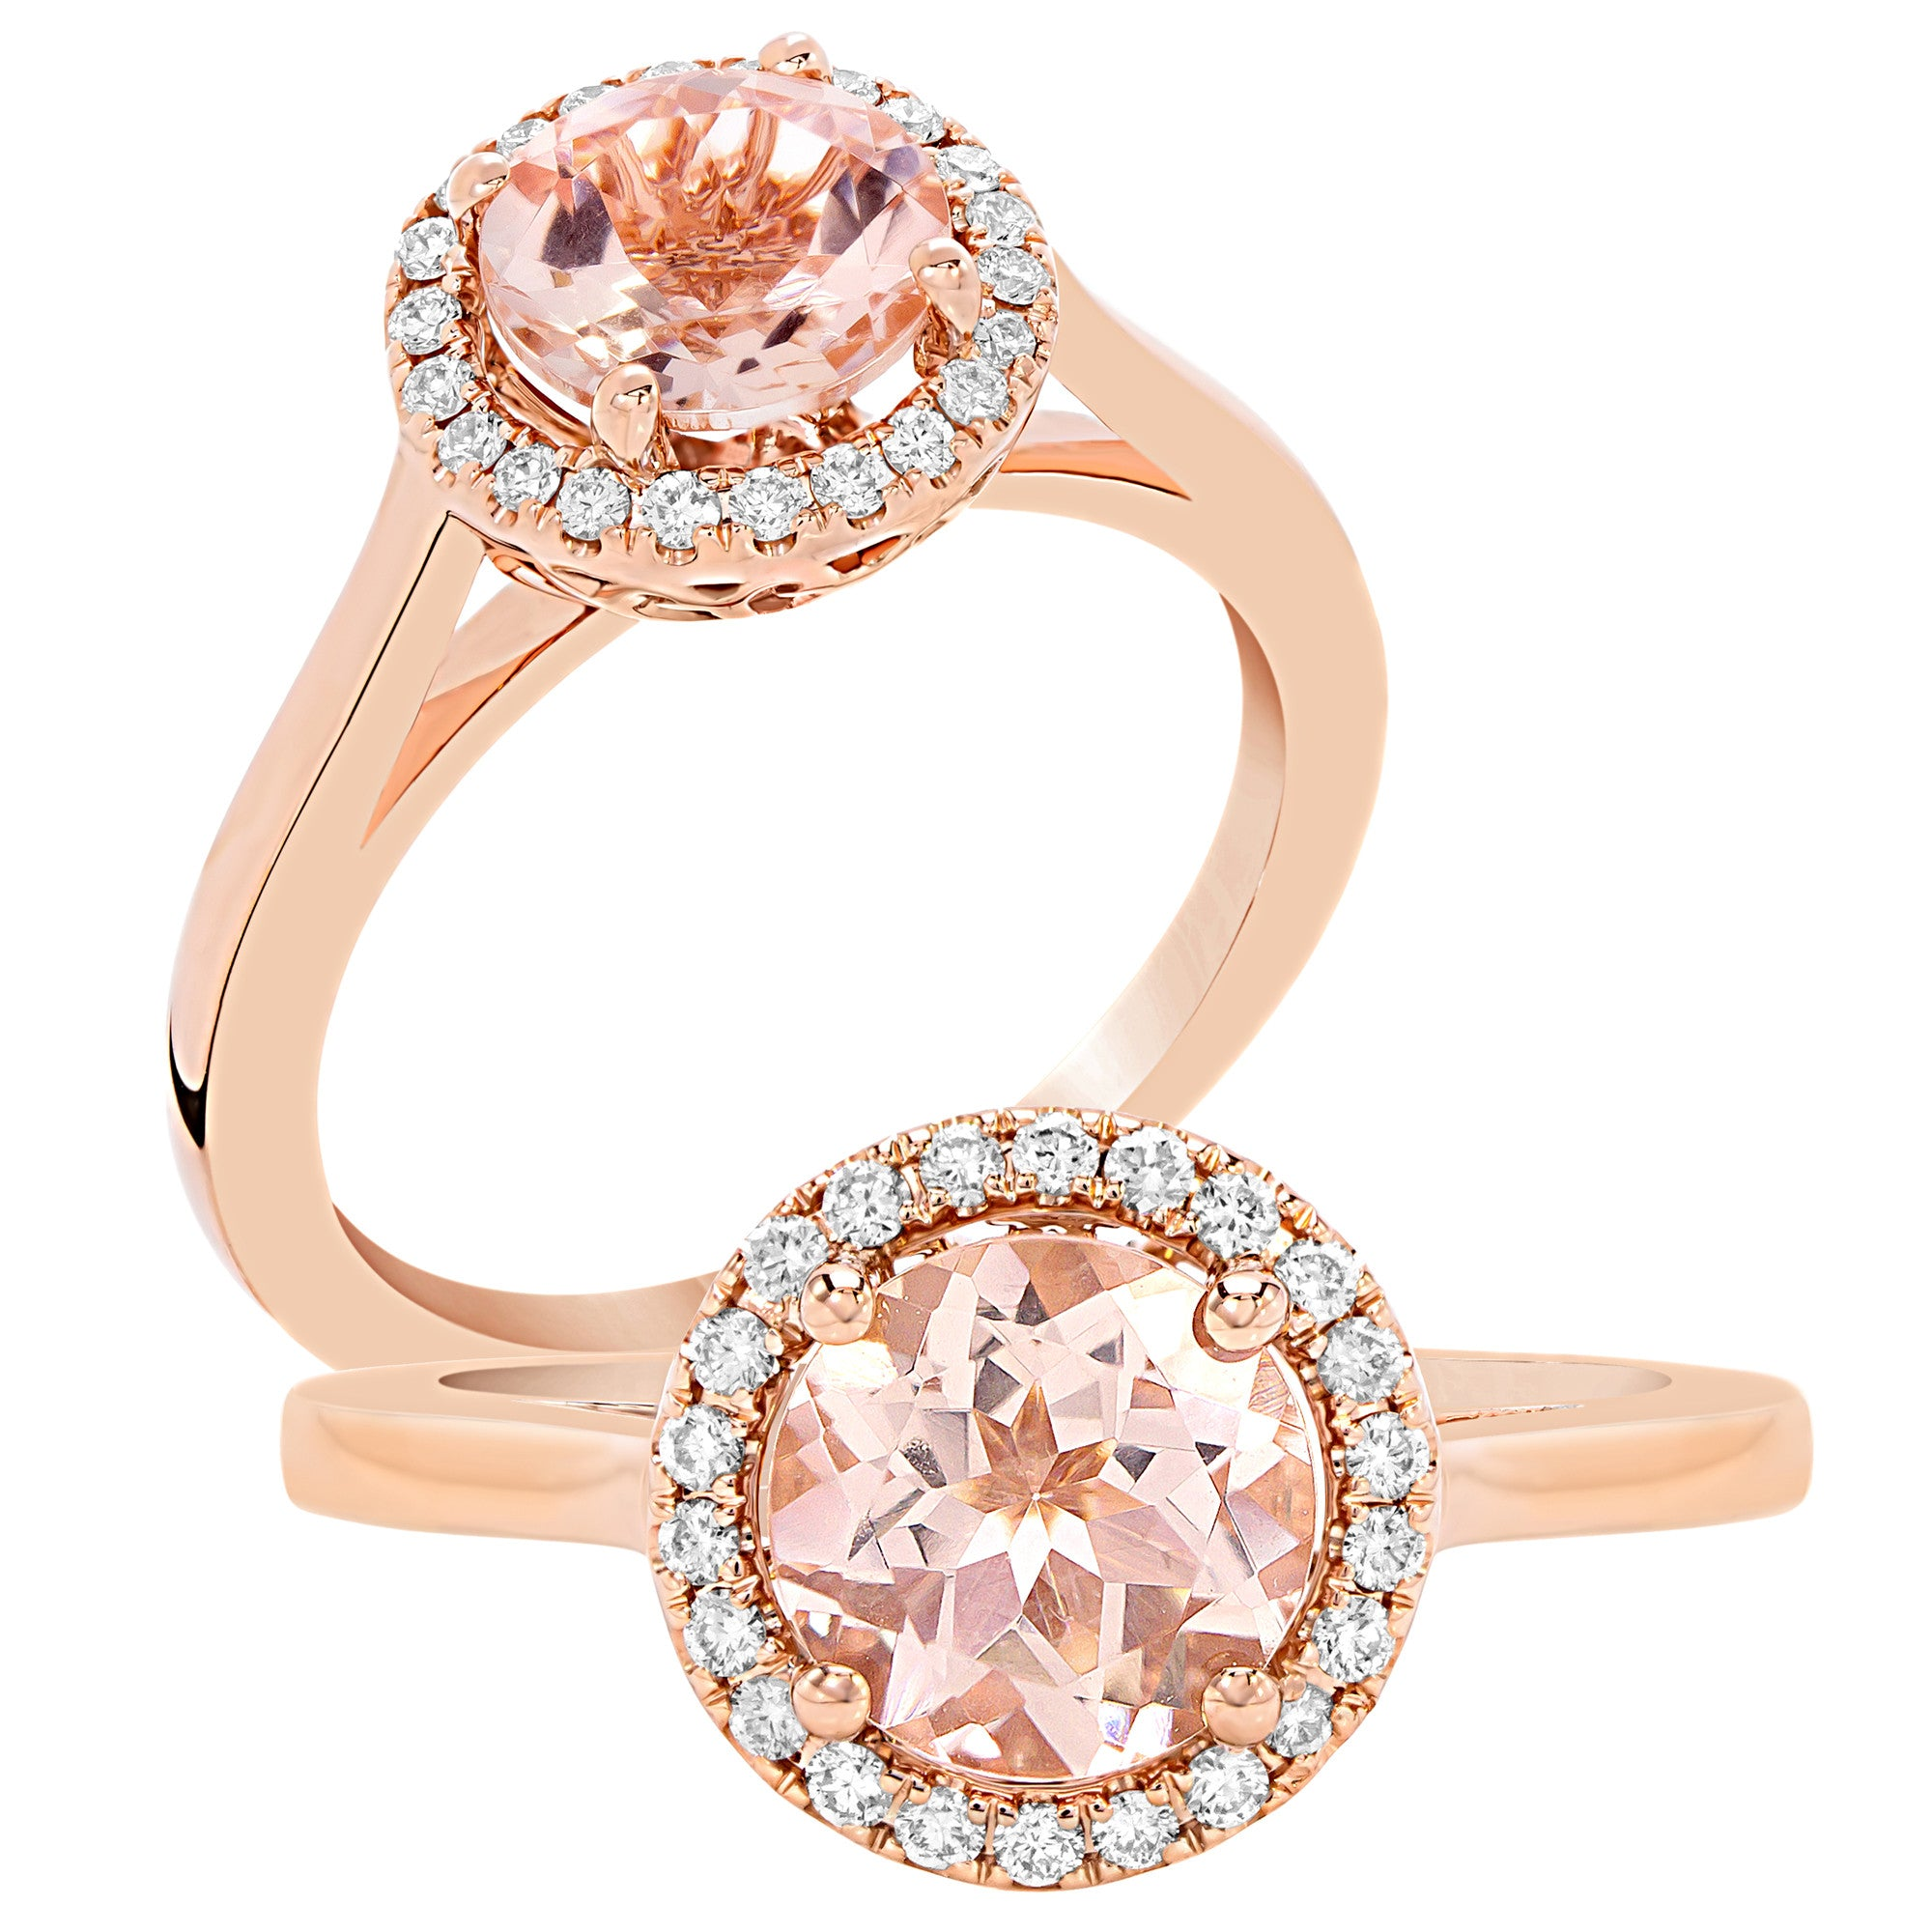 llc diamond morganite cut emerald ring halo designs engagement viaggio products bel ctw